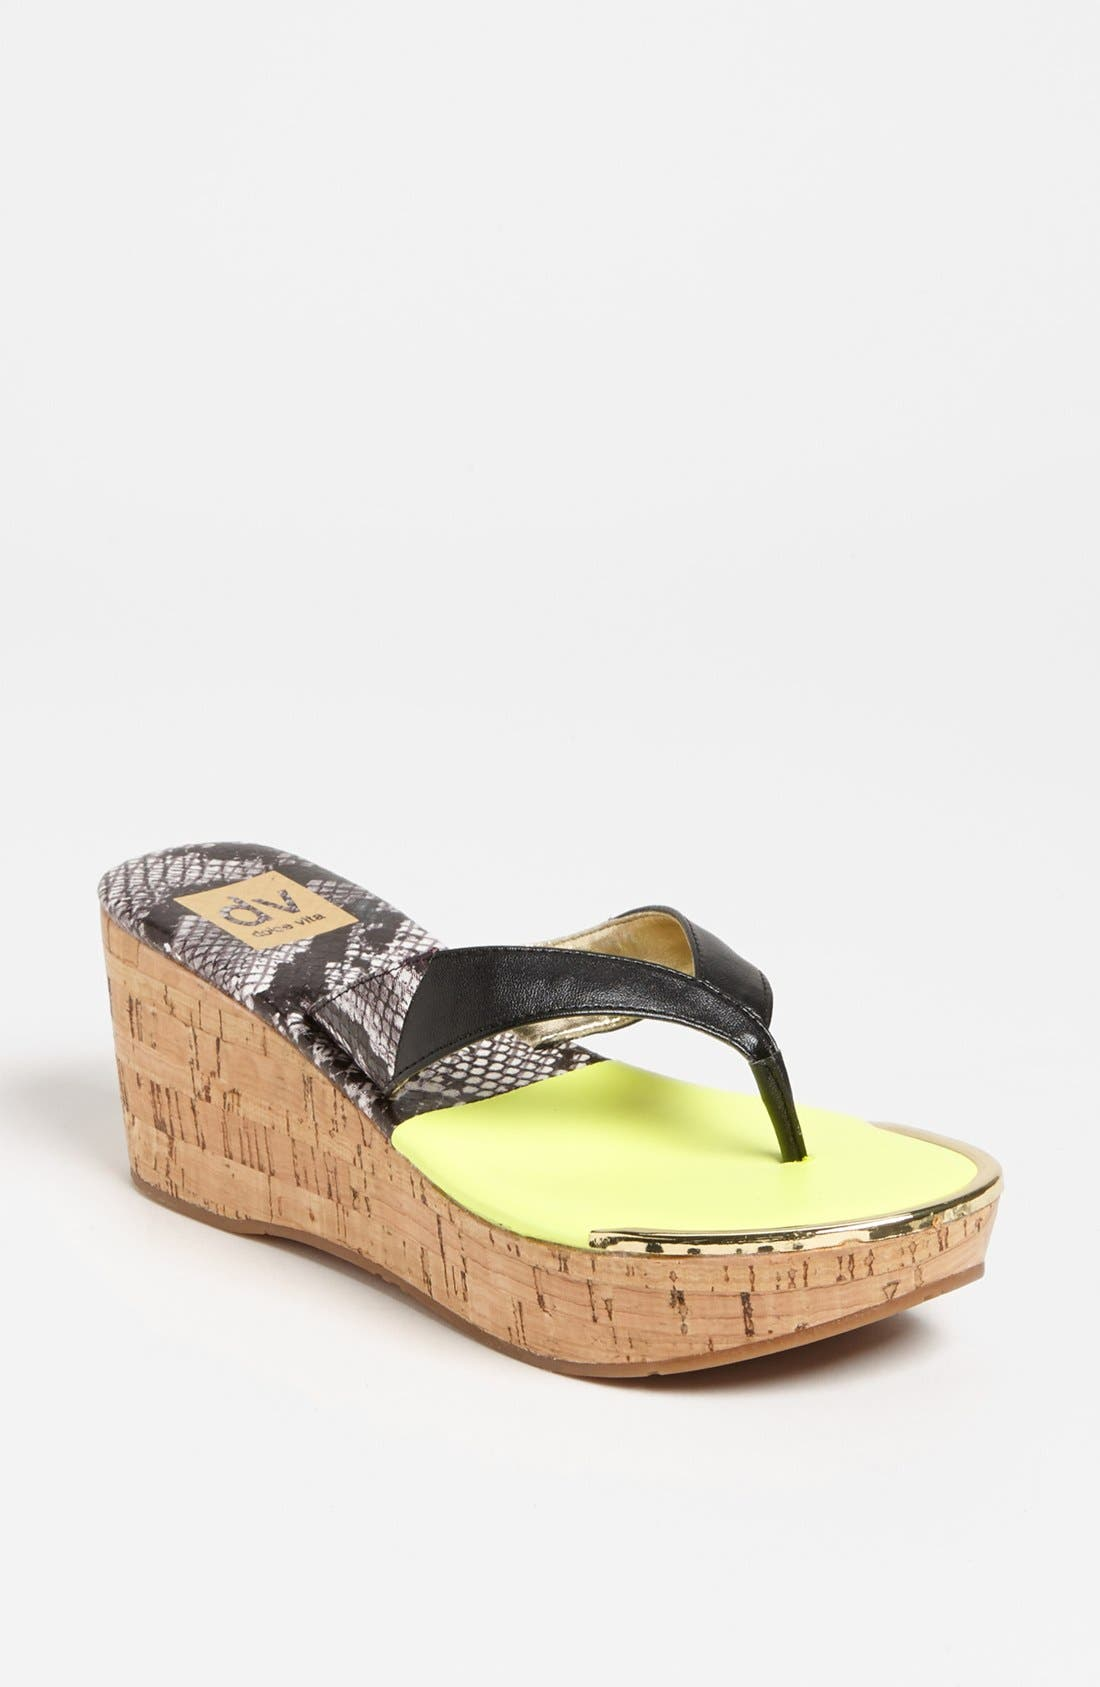 Alternate Image 1 Selected - DV by Dolce Vita 'Cosie' Sandal